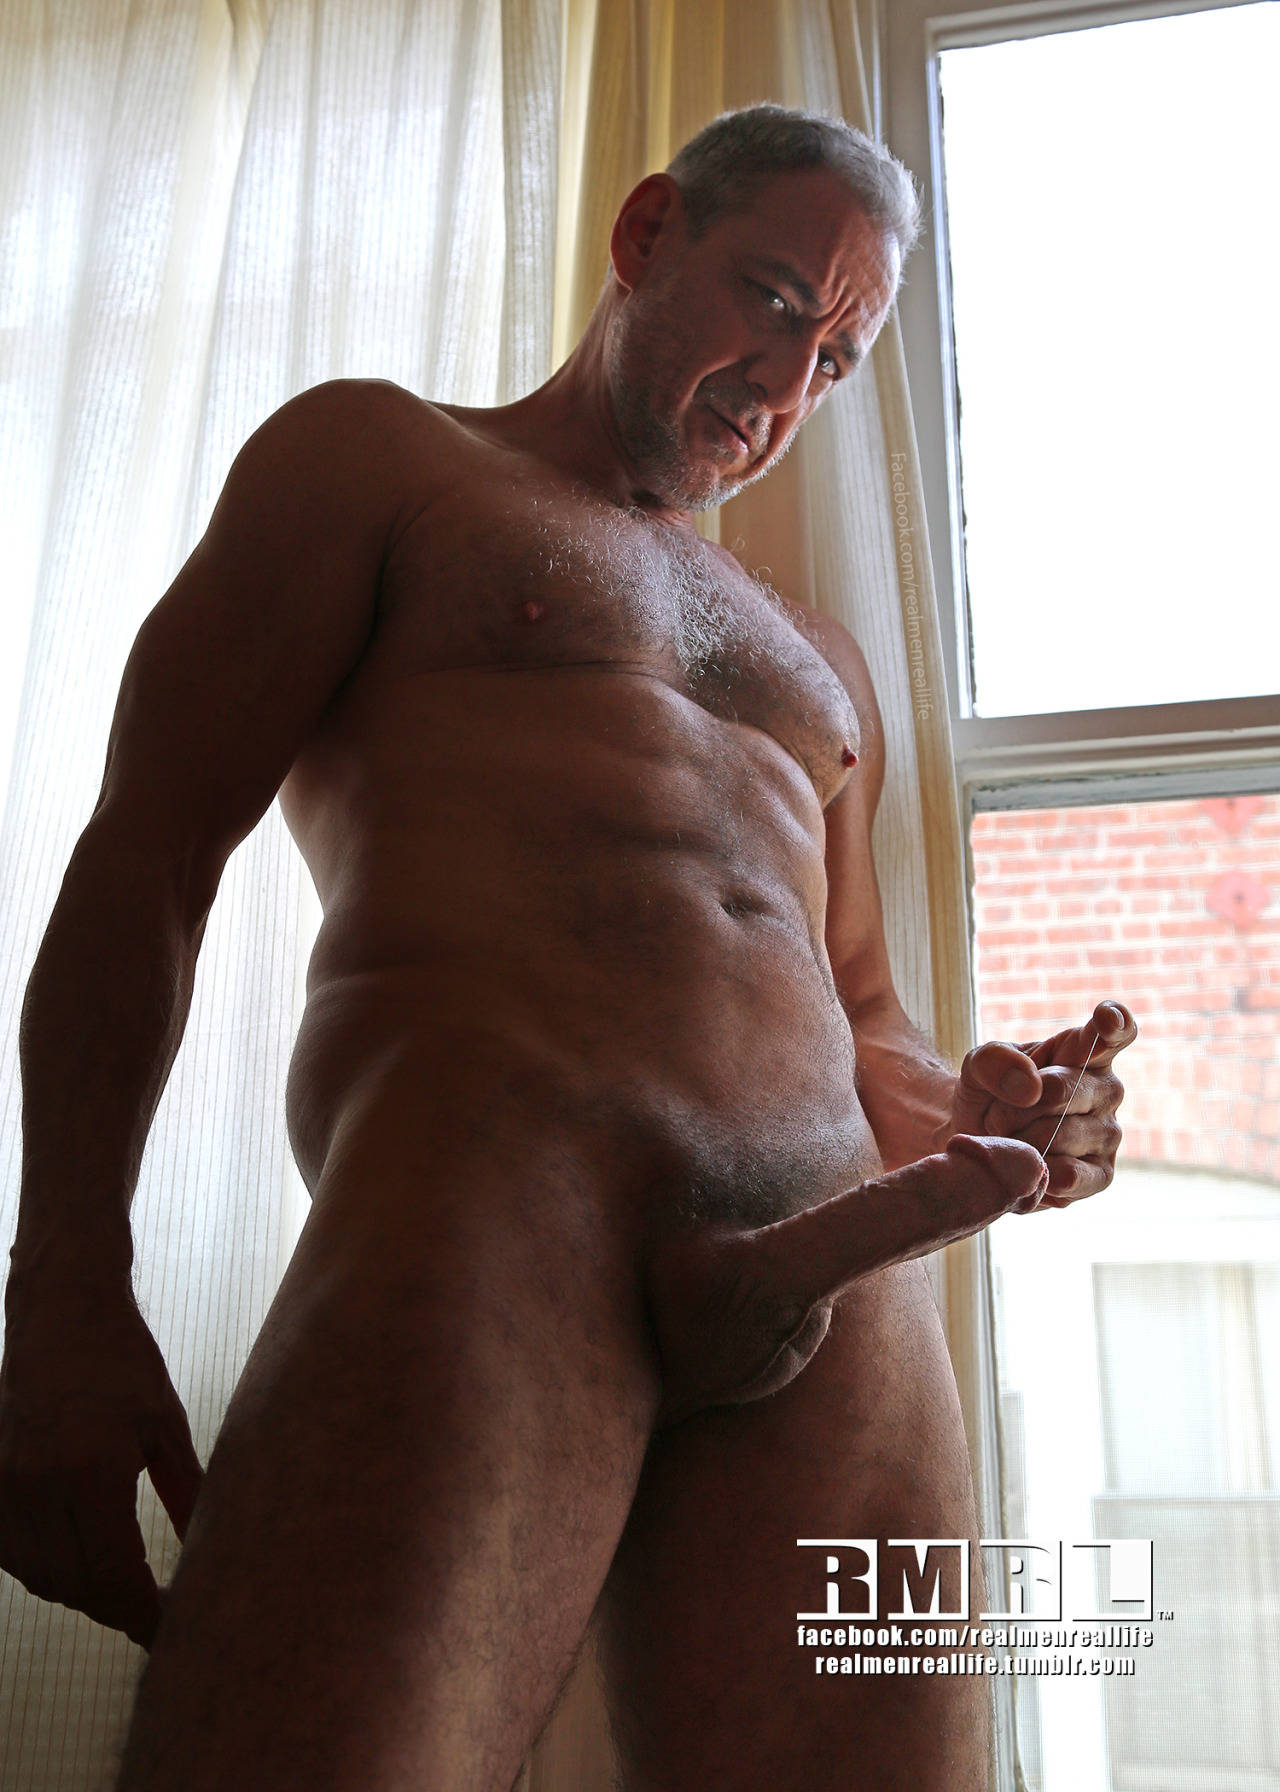 6 inch dick fuck gay he should be working 10